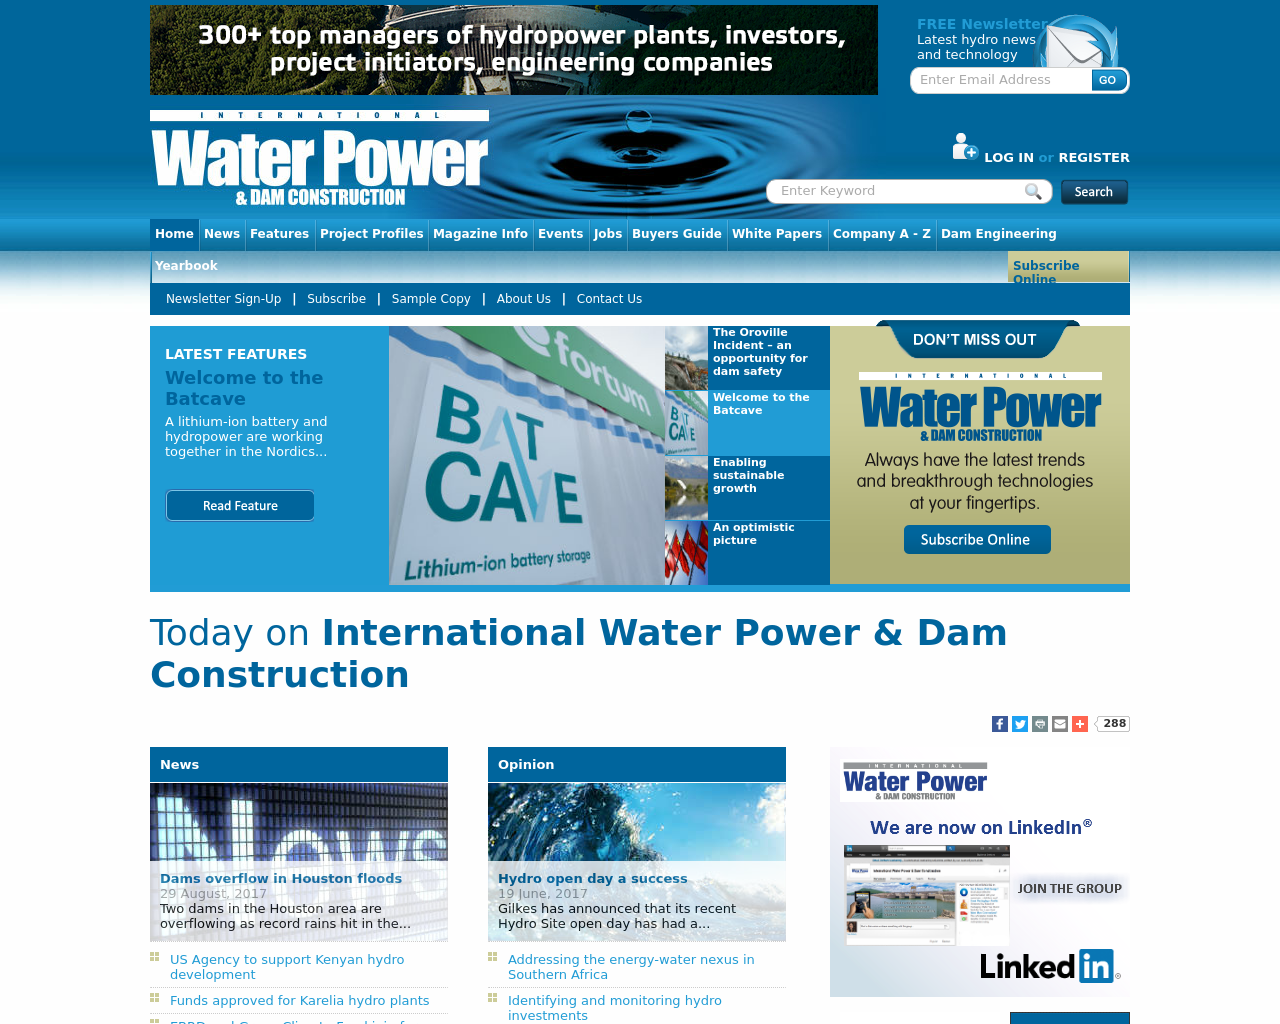 International-Water-Power-&-Dam-Construction-Advertising-Reviews-Pricing